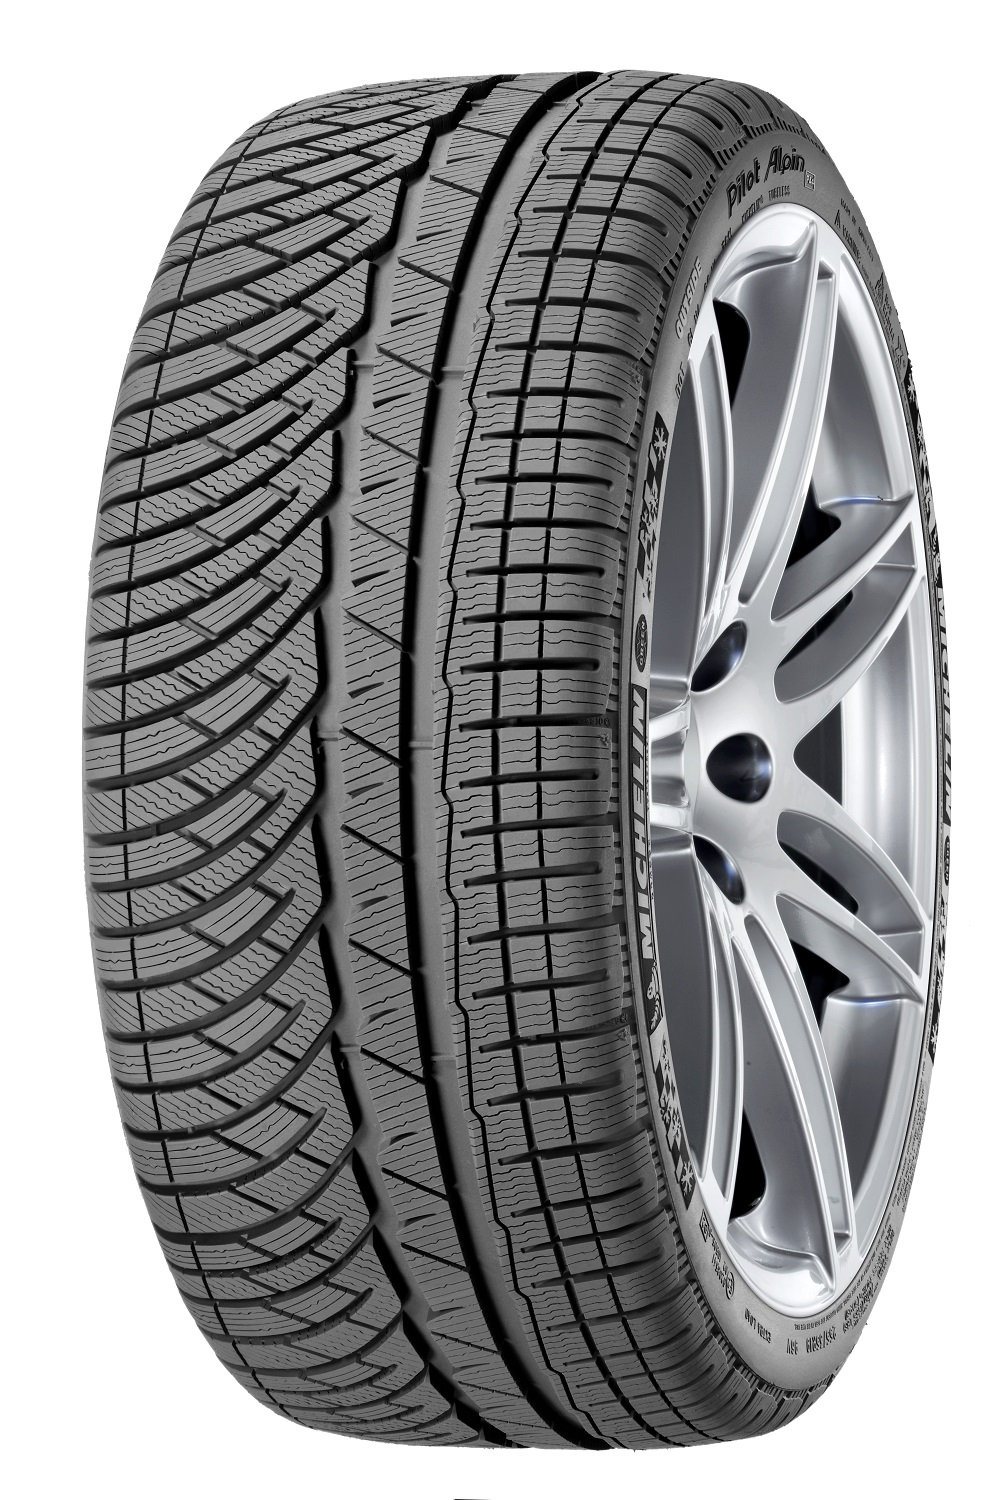 Anvelopa iarna MICHELIN PILOT ALPIN 4 XL 245/40 R18 97V